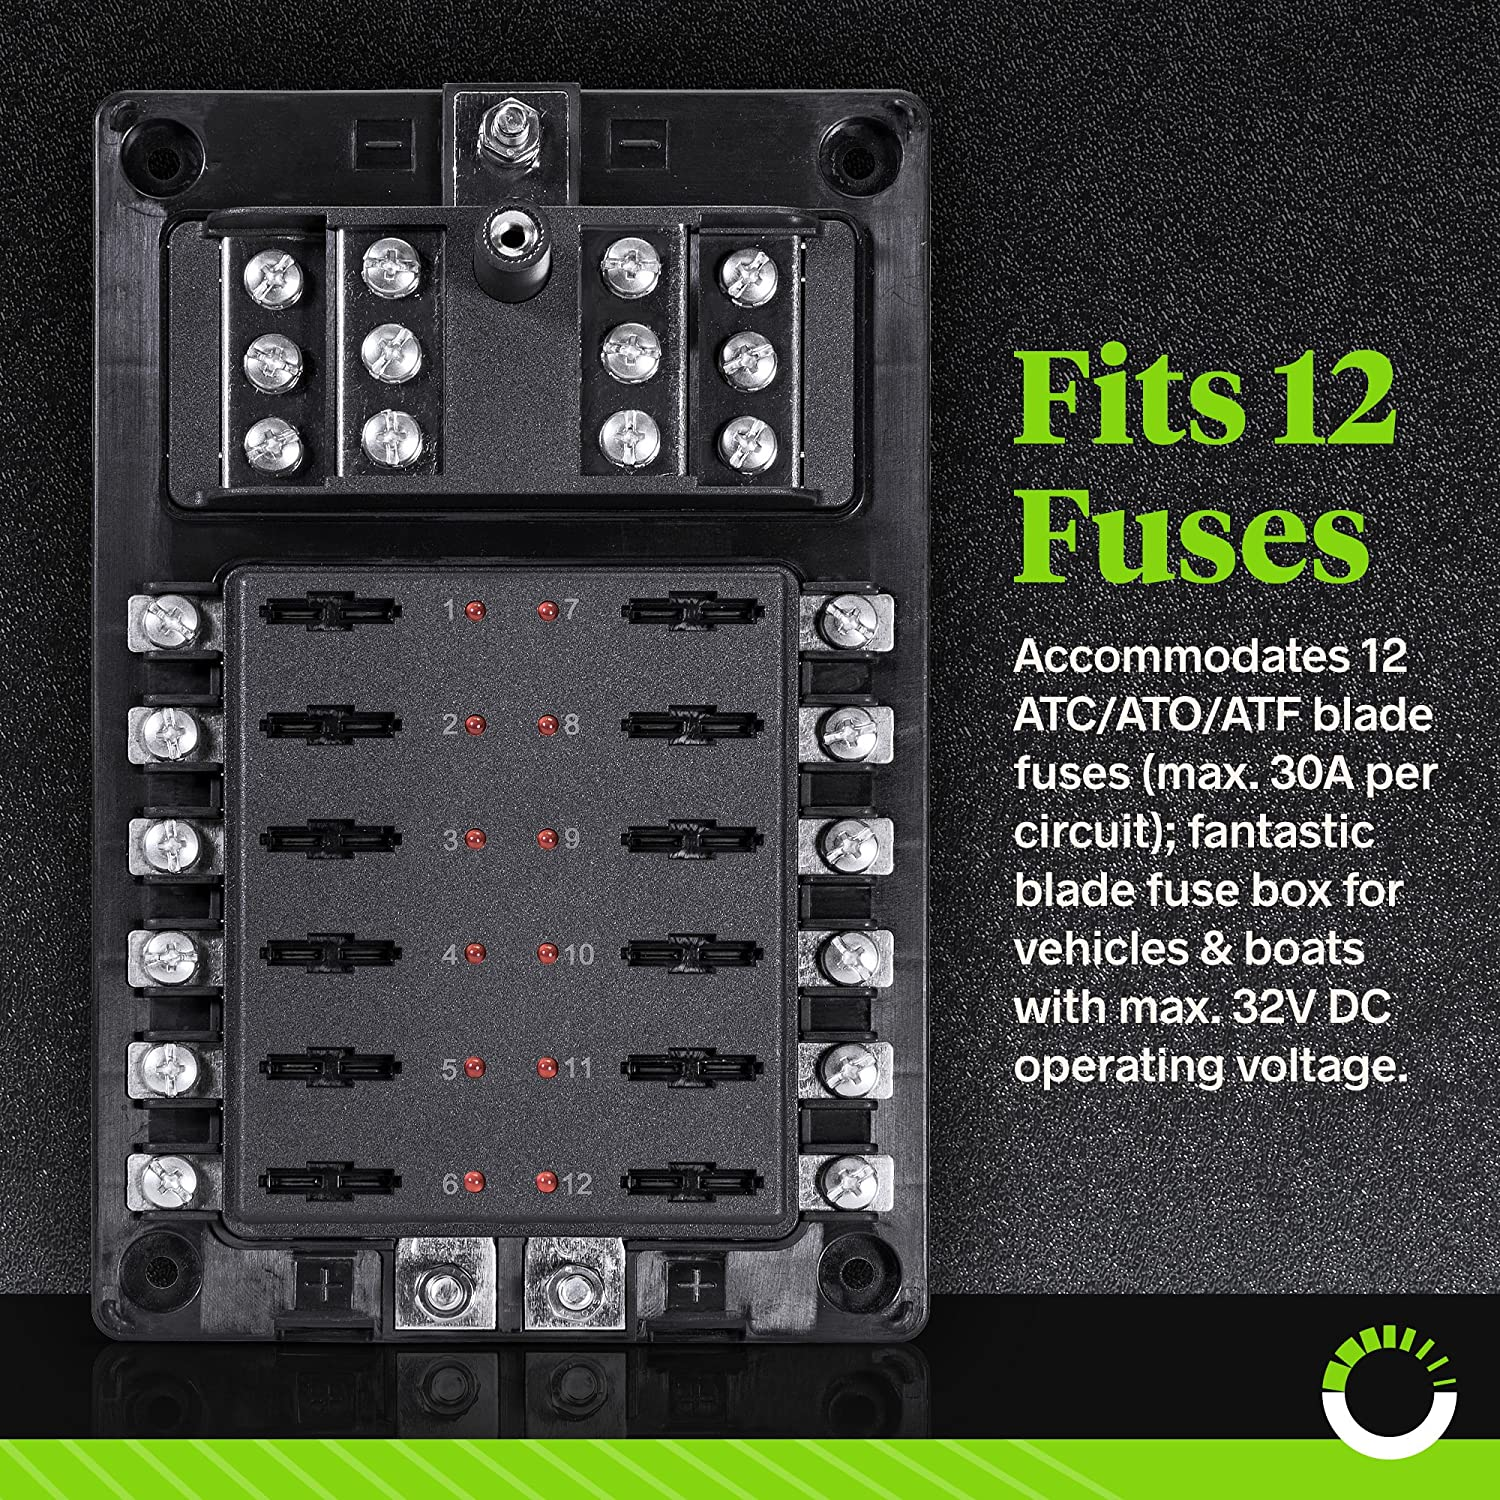 12 Fuse Box Extras Diy Enthusiasts Wiring Diagrams Dc Home Amazon Com Circuit Blade Block W Thumbscrew Cover Led Rh Electrical